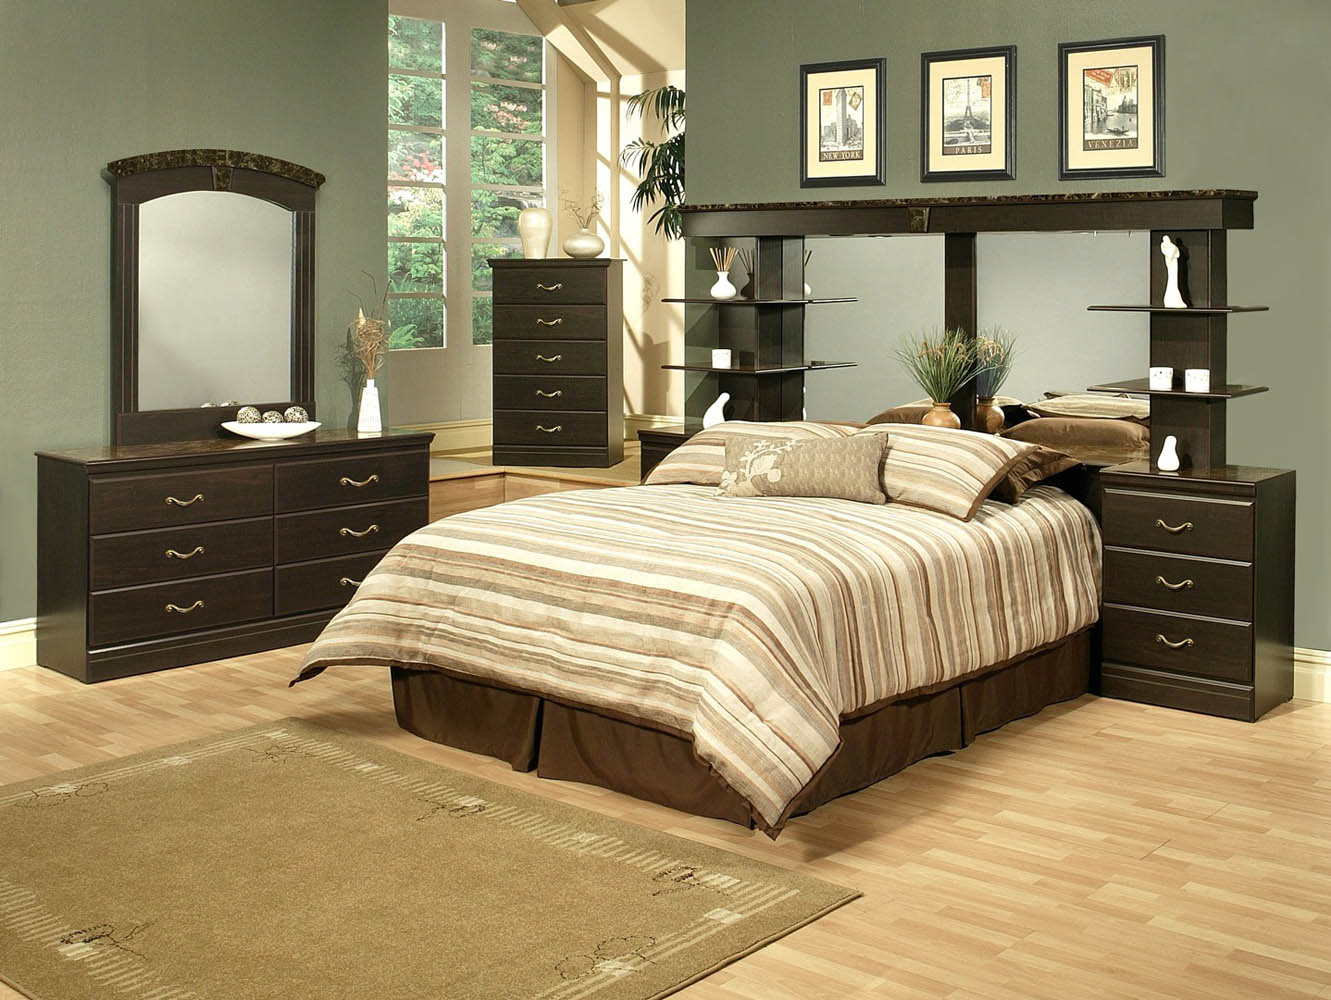 wall unit bedroom set 4 espresso finish wall unit bedroom set 17762